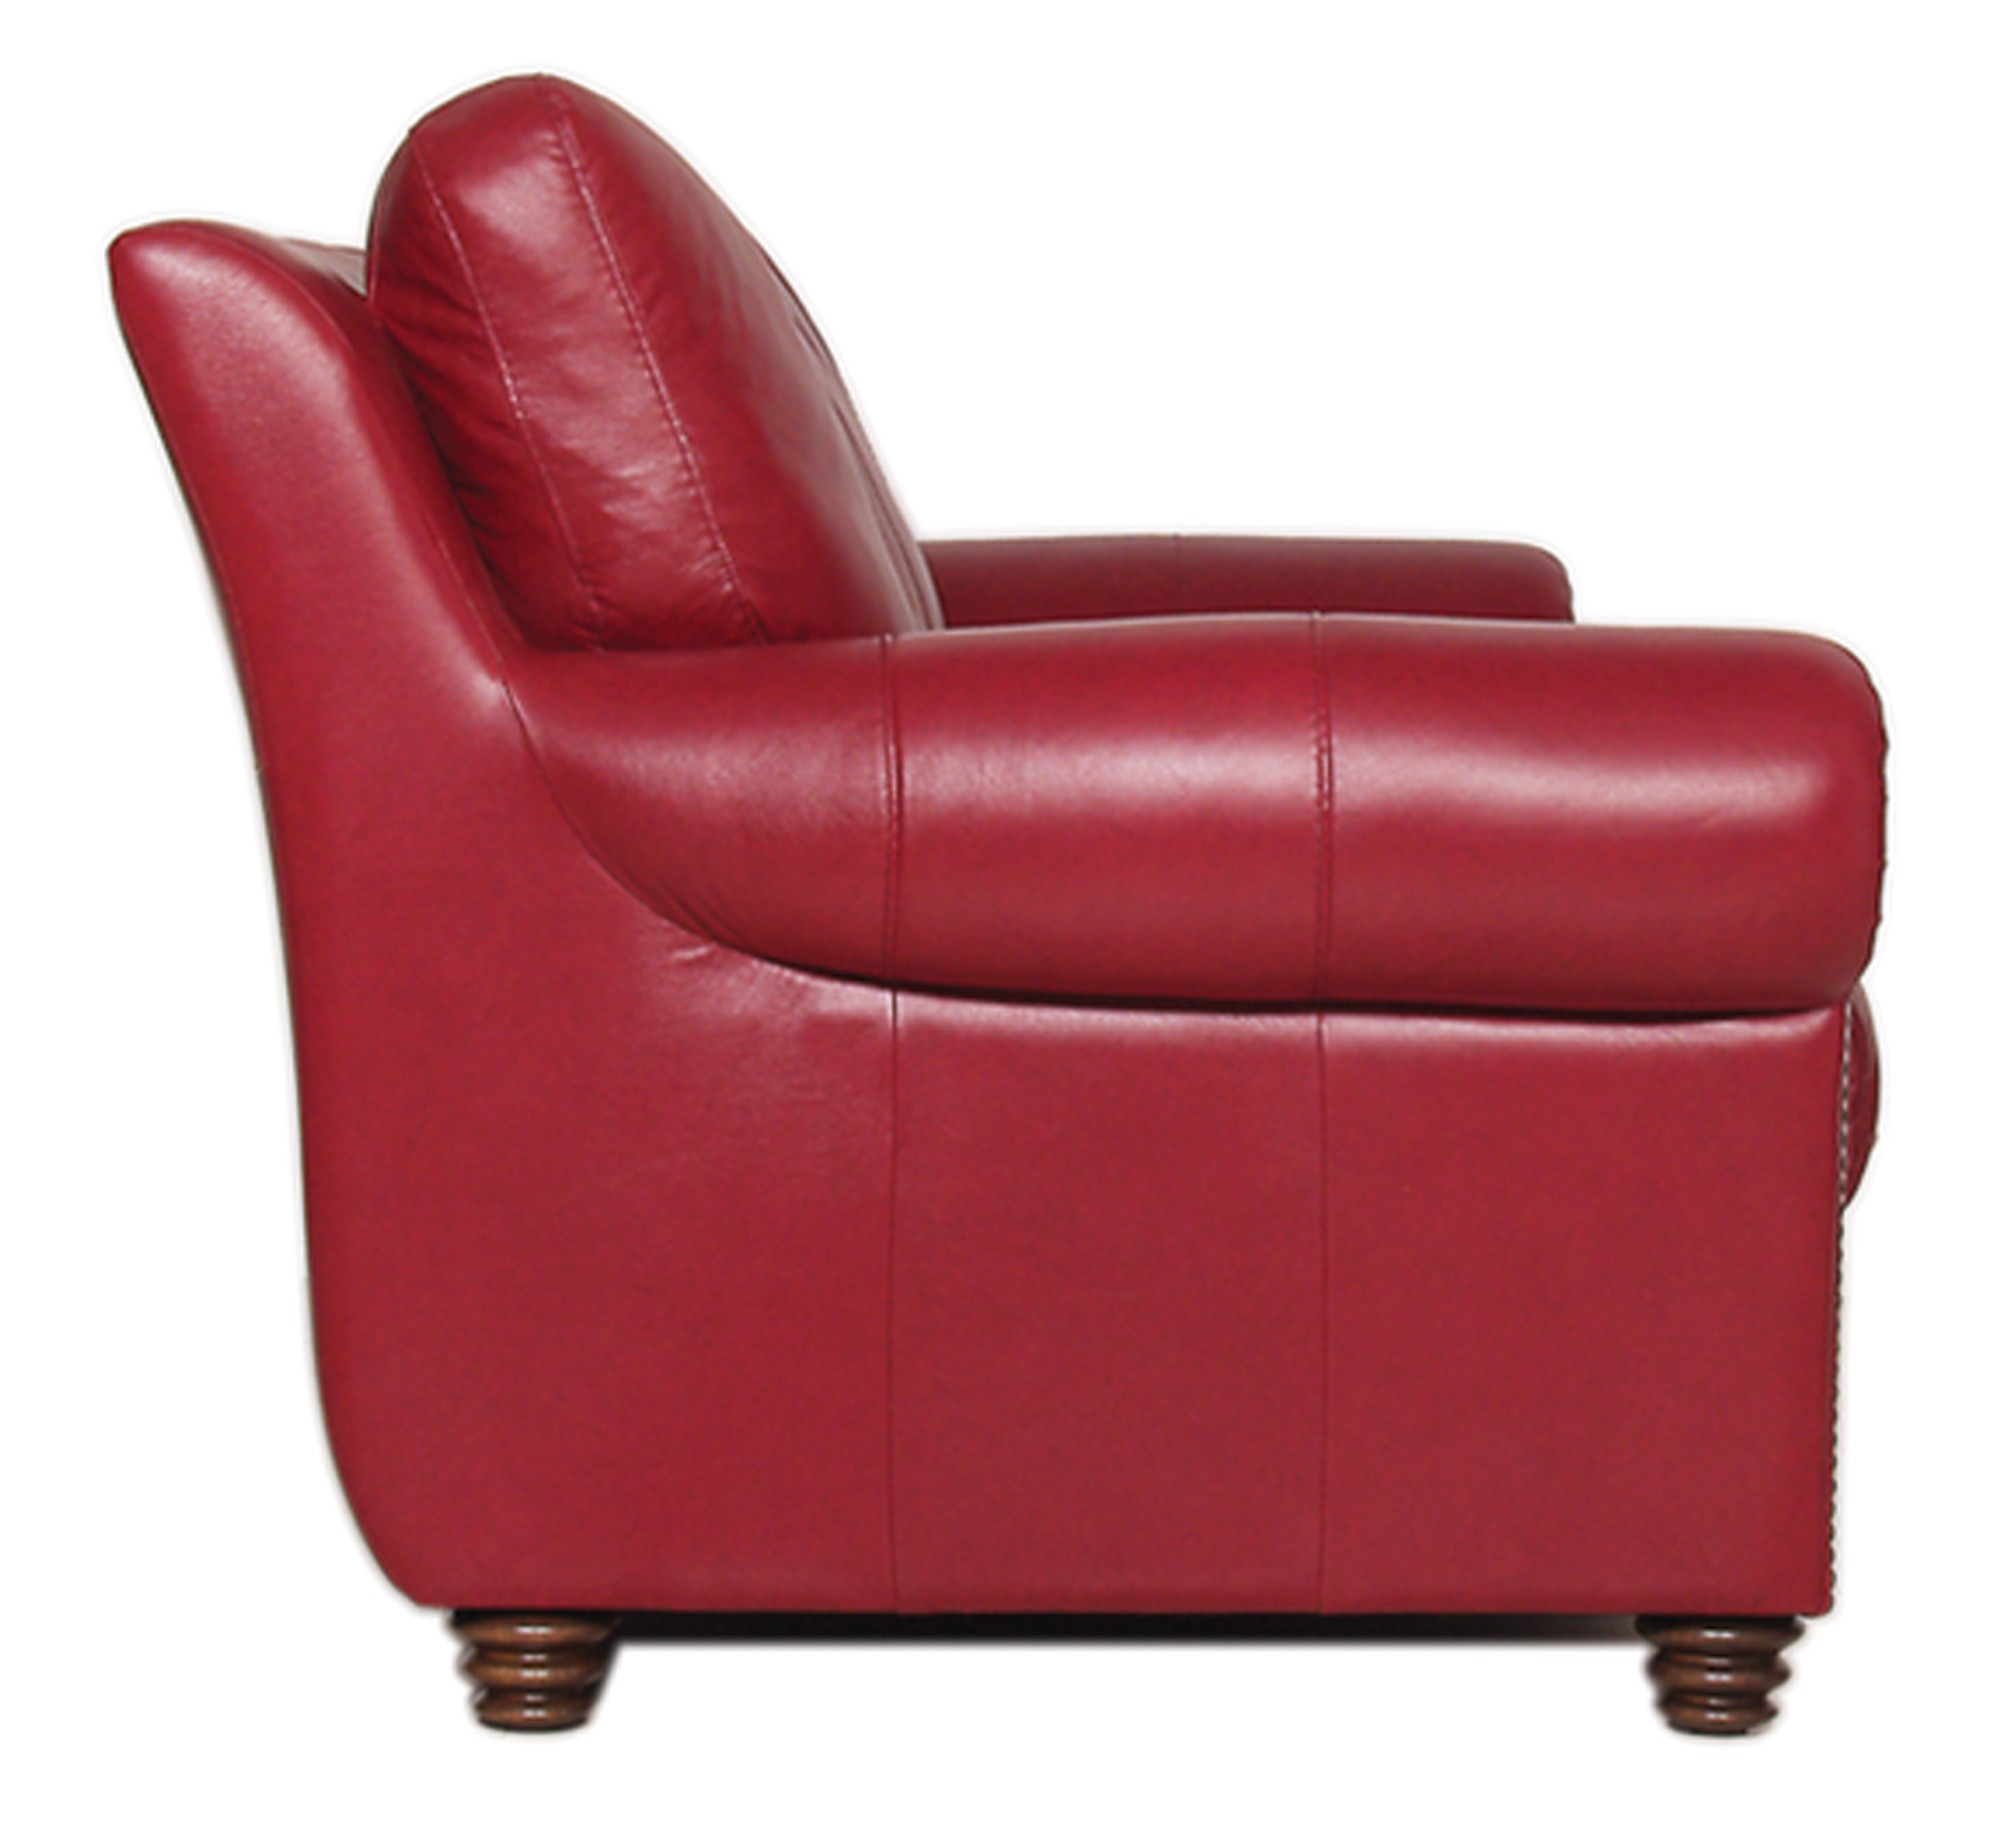 Weston Collection Luke Leather Furniture